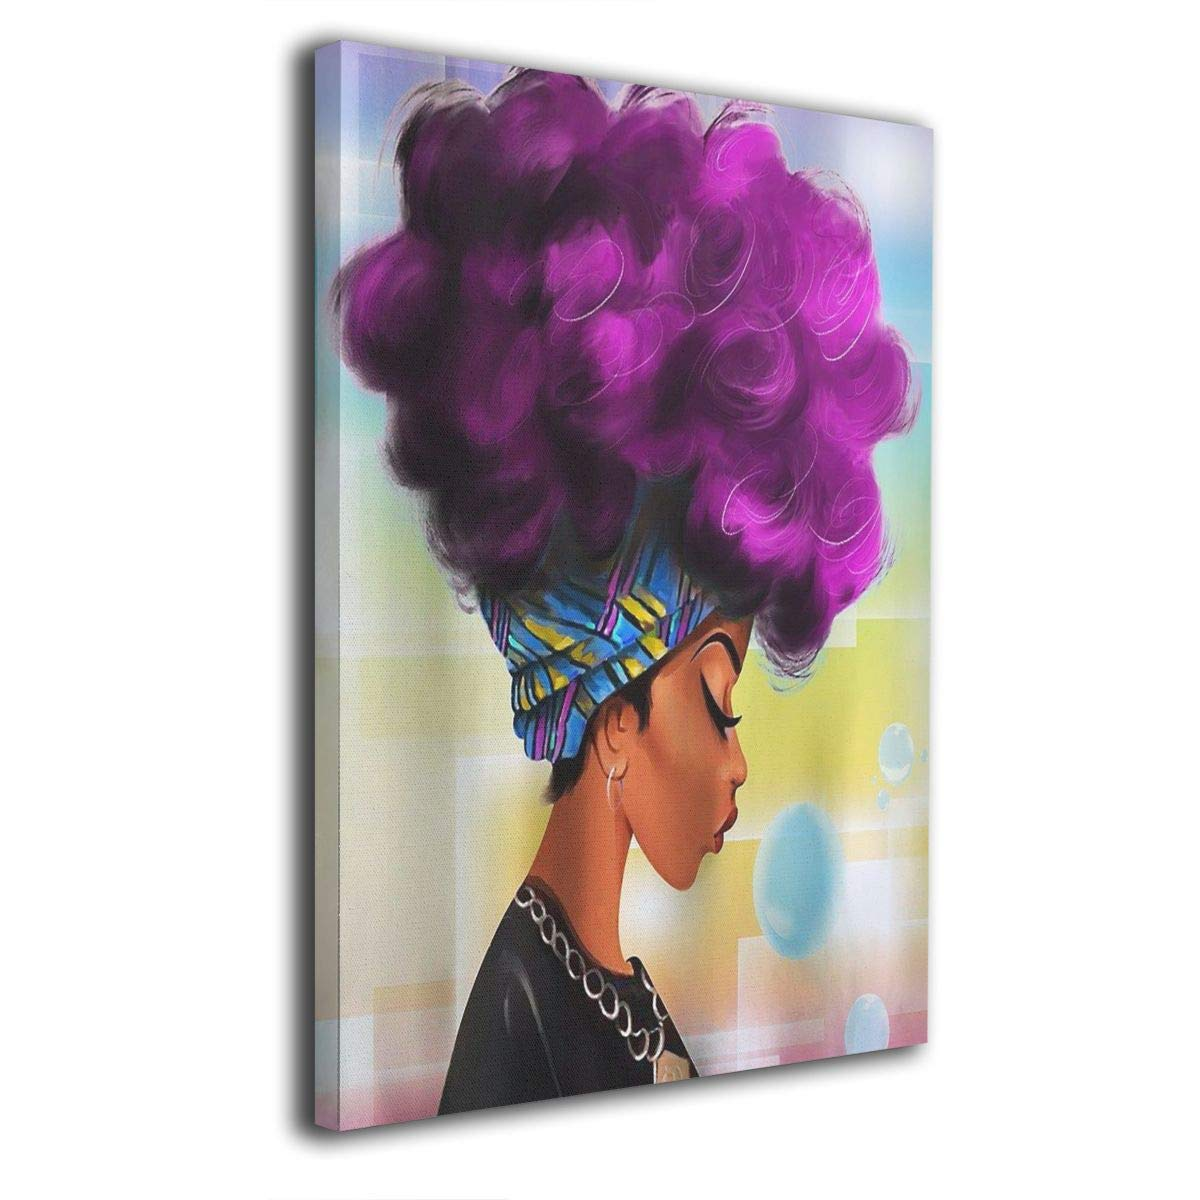 African Art Women with Bubble Gum 8x12 Painting Canvas Wall Art Squidward Paintings Abstract Modern Style for Living Room Bedroom Bathroom